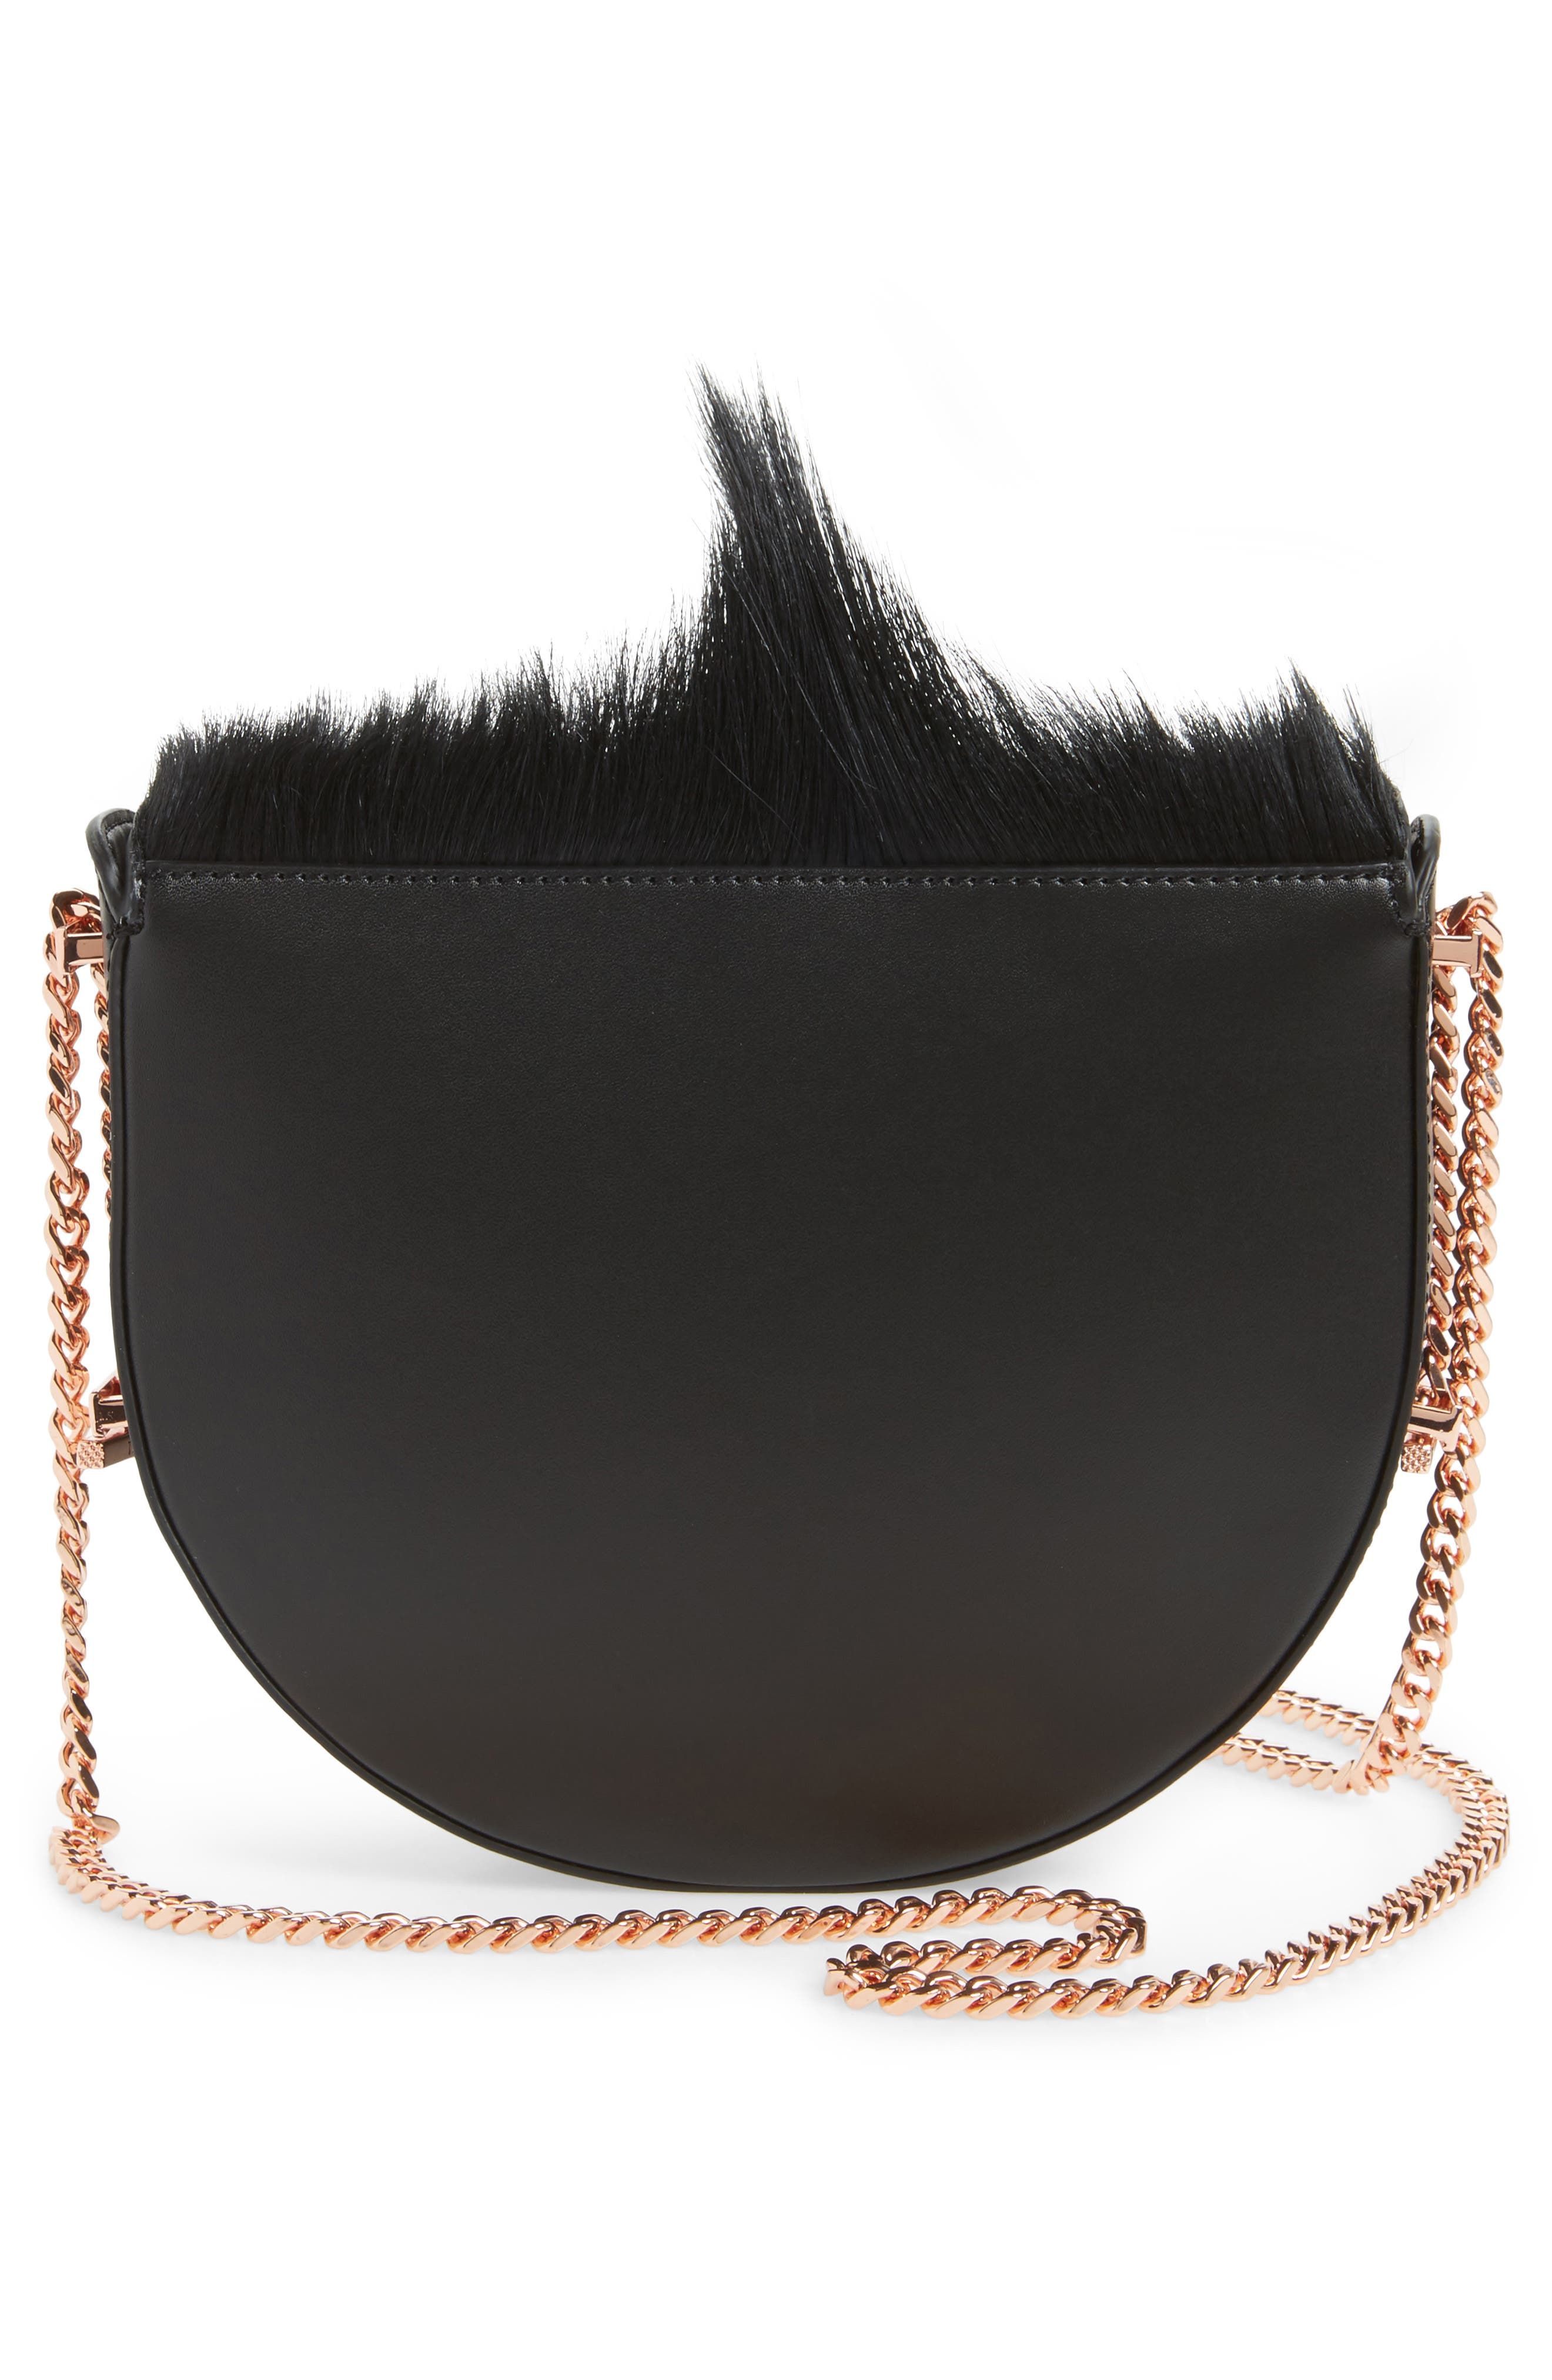 Alisonn Leather & Genuine Springbok Fur Saddle Bag,                             Alternate thumbnail 3, color,                             Black